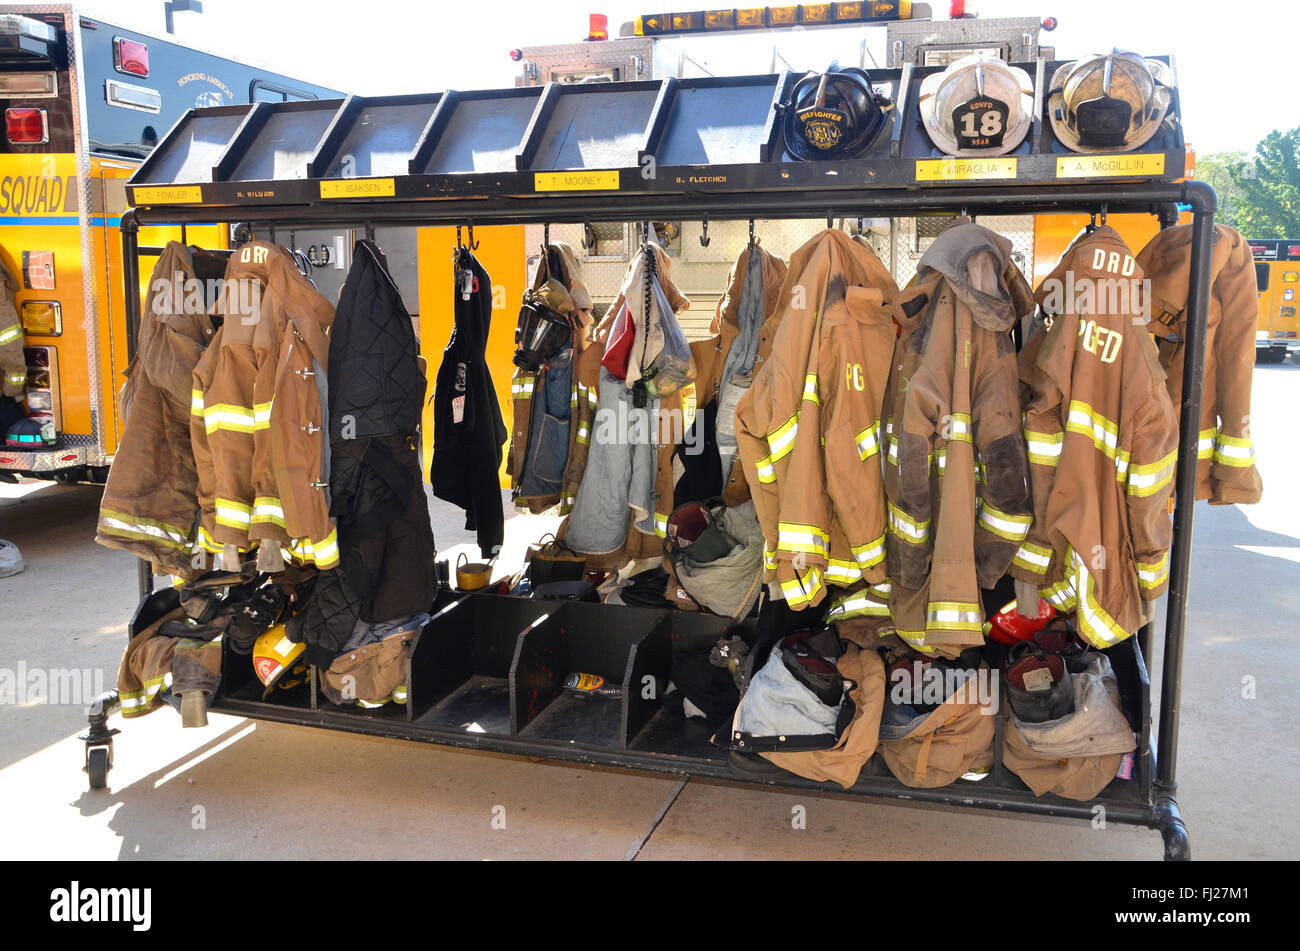 firefighters turnout gear hanging on racks outside - Stock Image